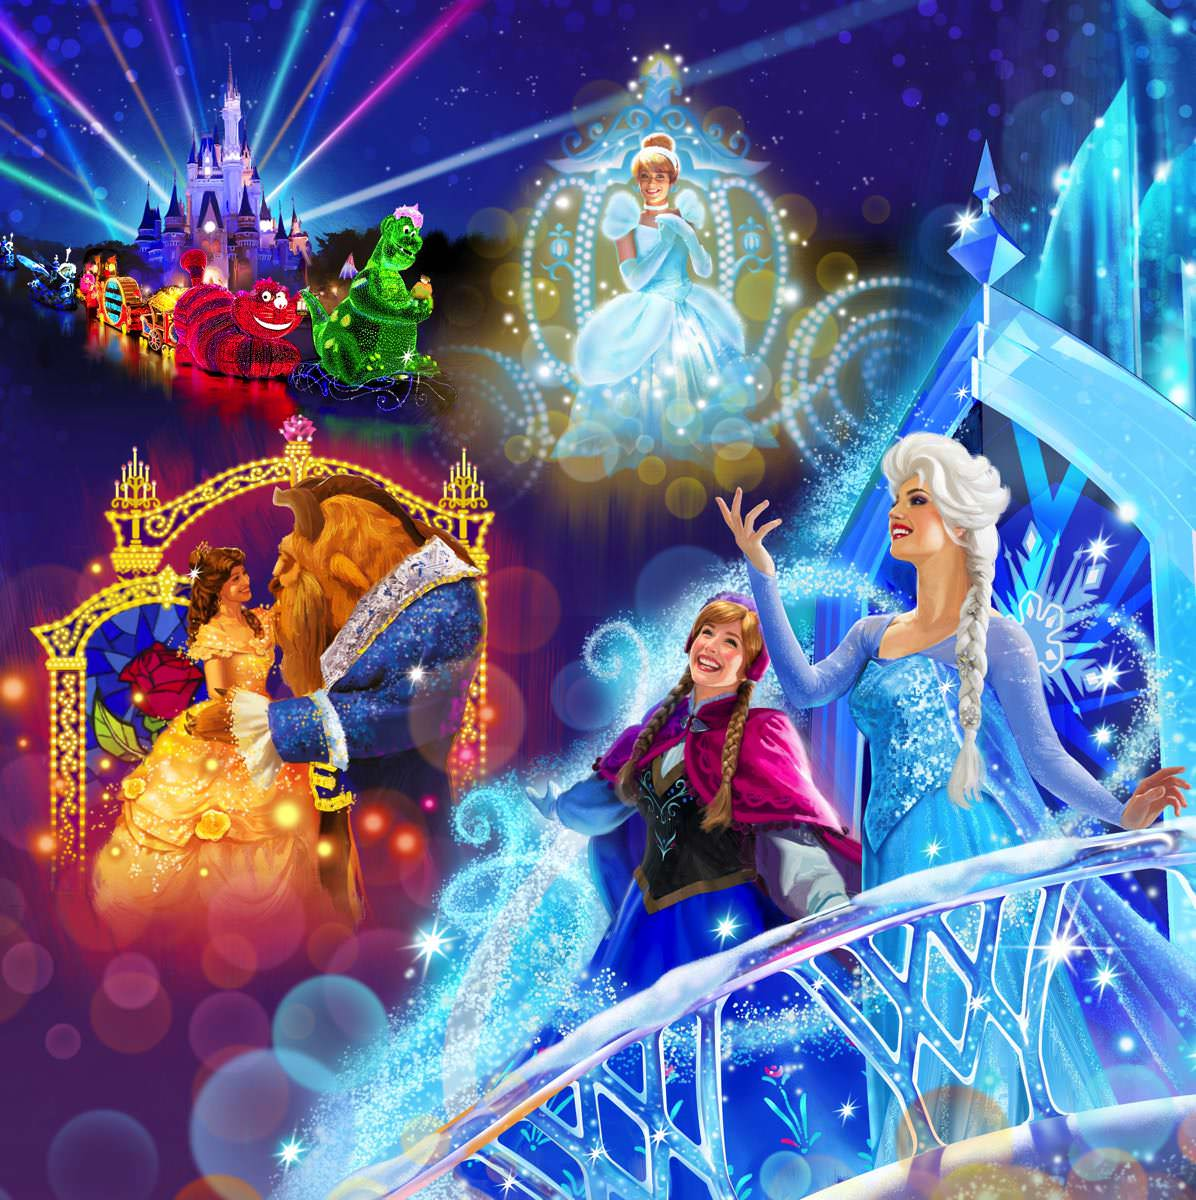 Anna and Elsa's Ice Castle, Beauty and the Beast and Cinderella floats